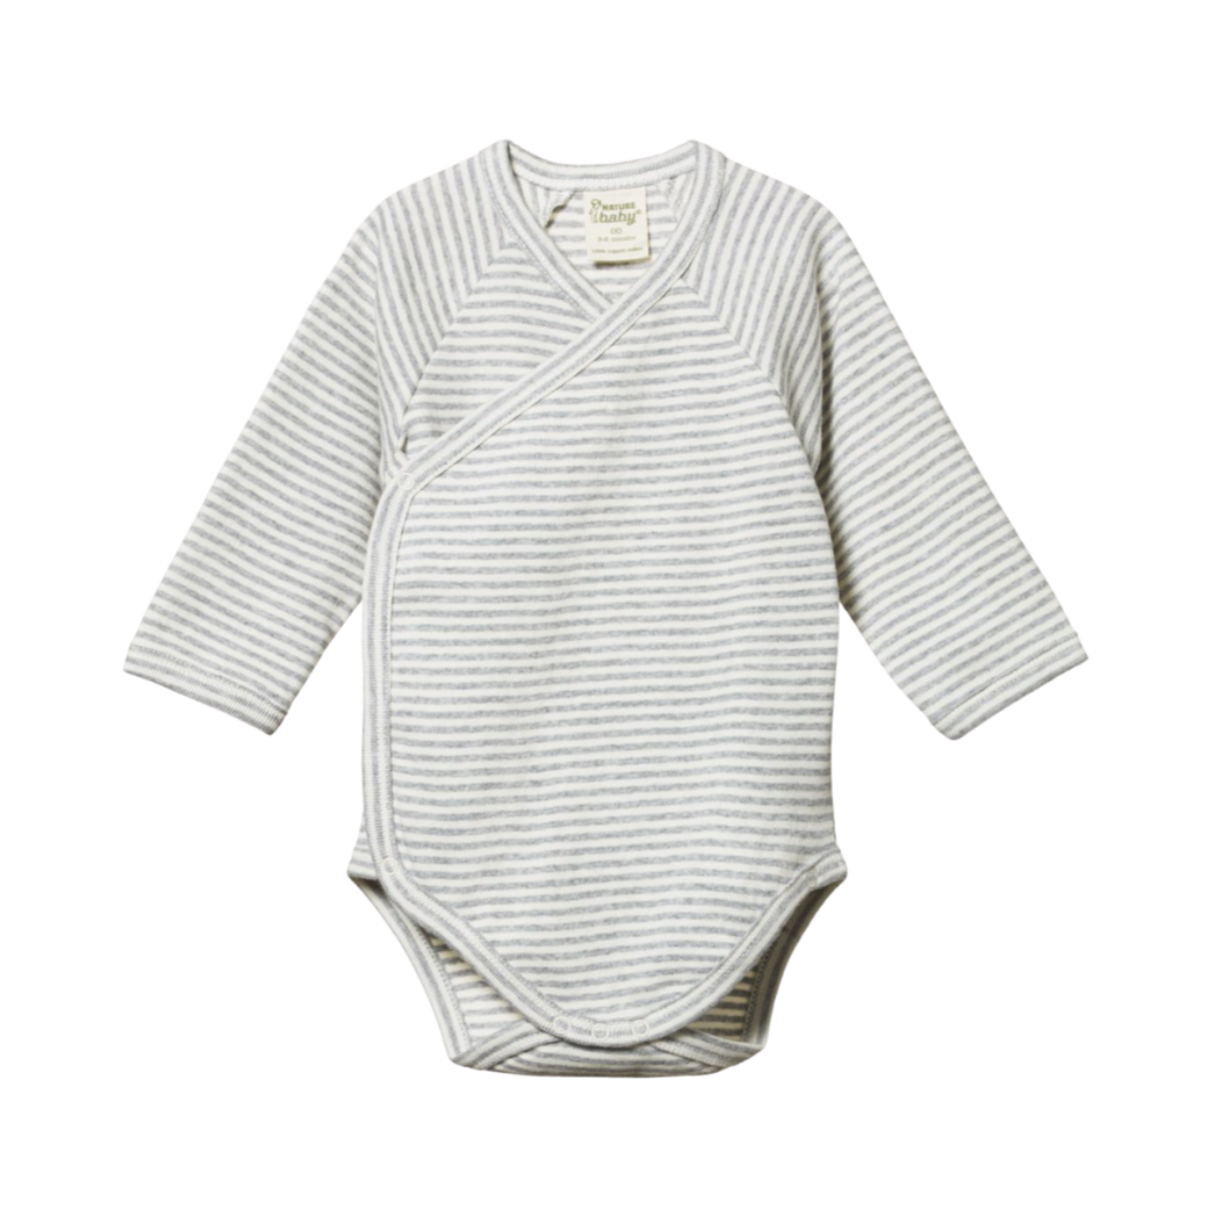 Nature Baby Long Sleeve Kimono Bodysuit in Grey Marl Stripe